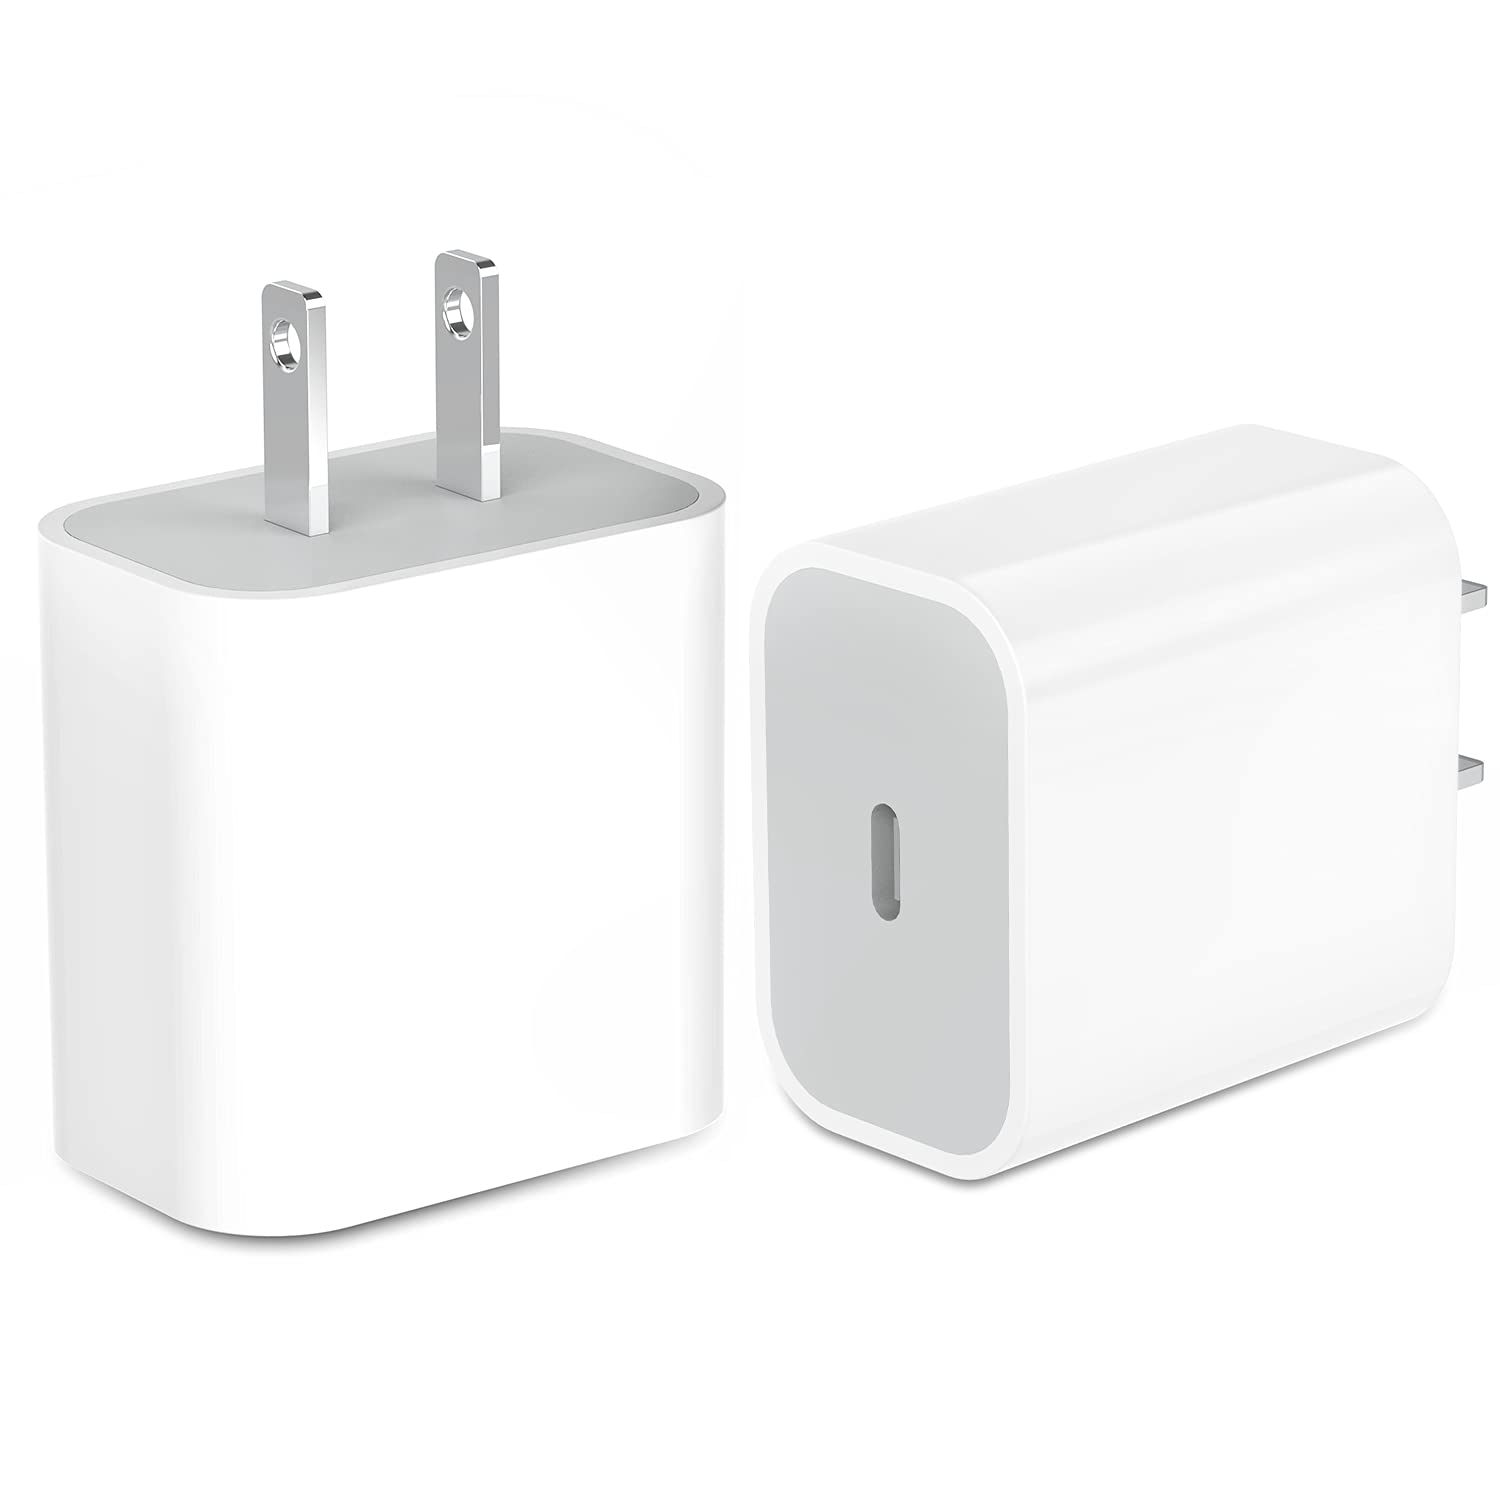 USB C Charger,20W iPhone 12 Fast Charger Block USB Type C Wall Charger with PD 3.0, Durable Compact USB-C Power Delivery Adapter Compatible with iPhone 12/12 Pro Max 12 Mini,MagSafe,11 Pro Max(2 Pack)